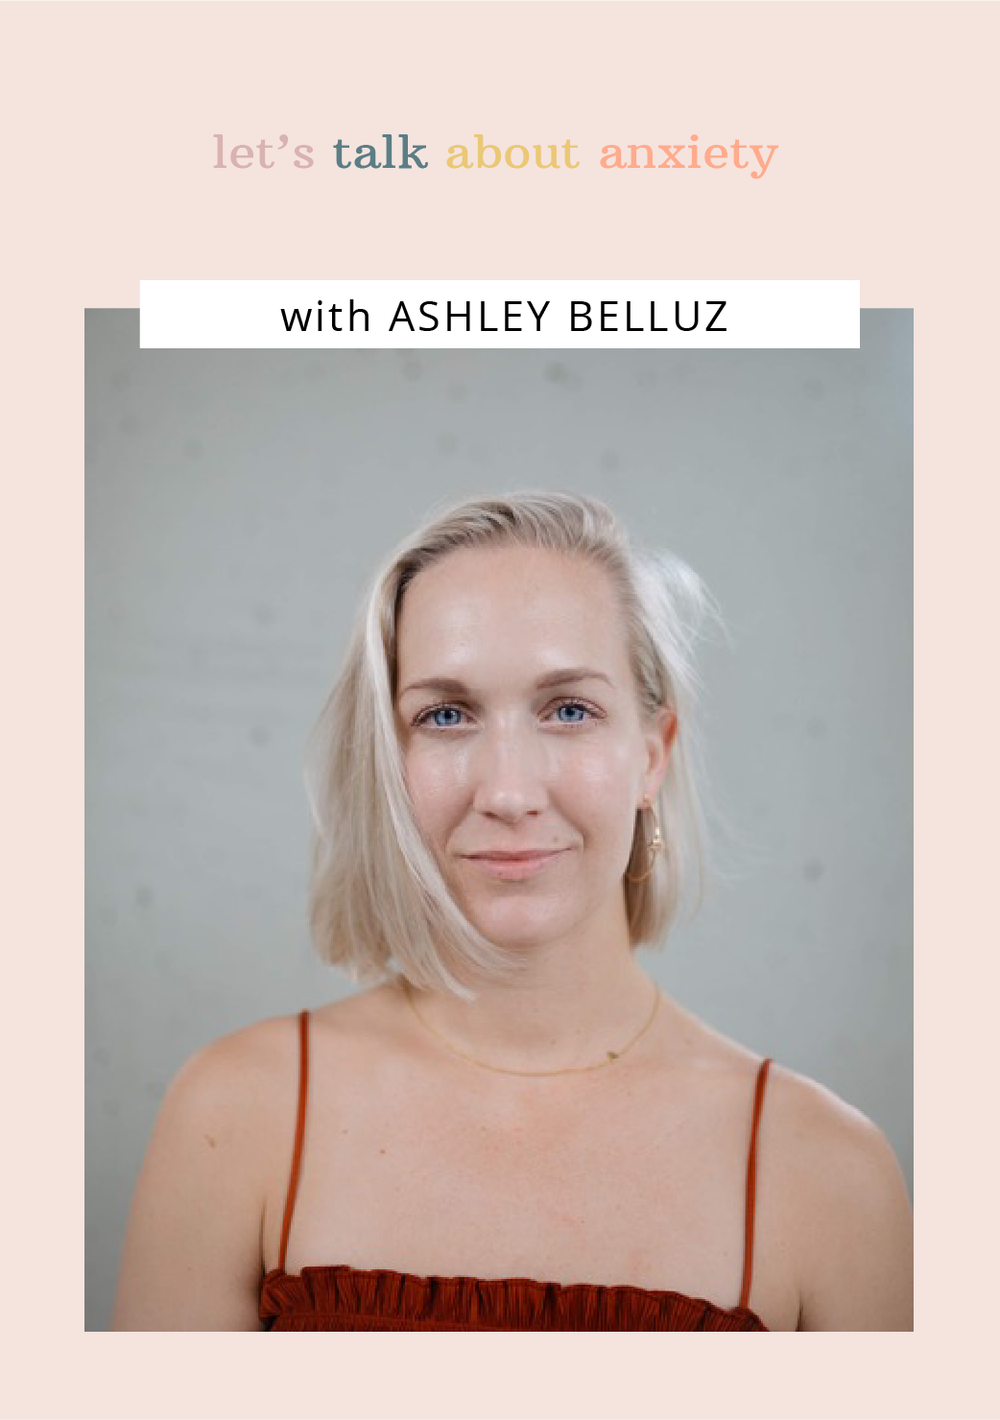 Let's Talk About Anxiety: Ashely Belluz Image